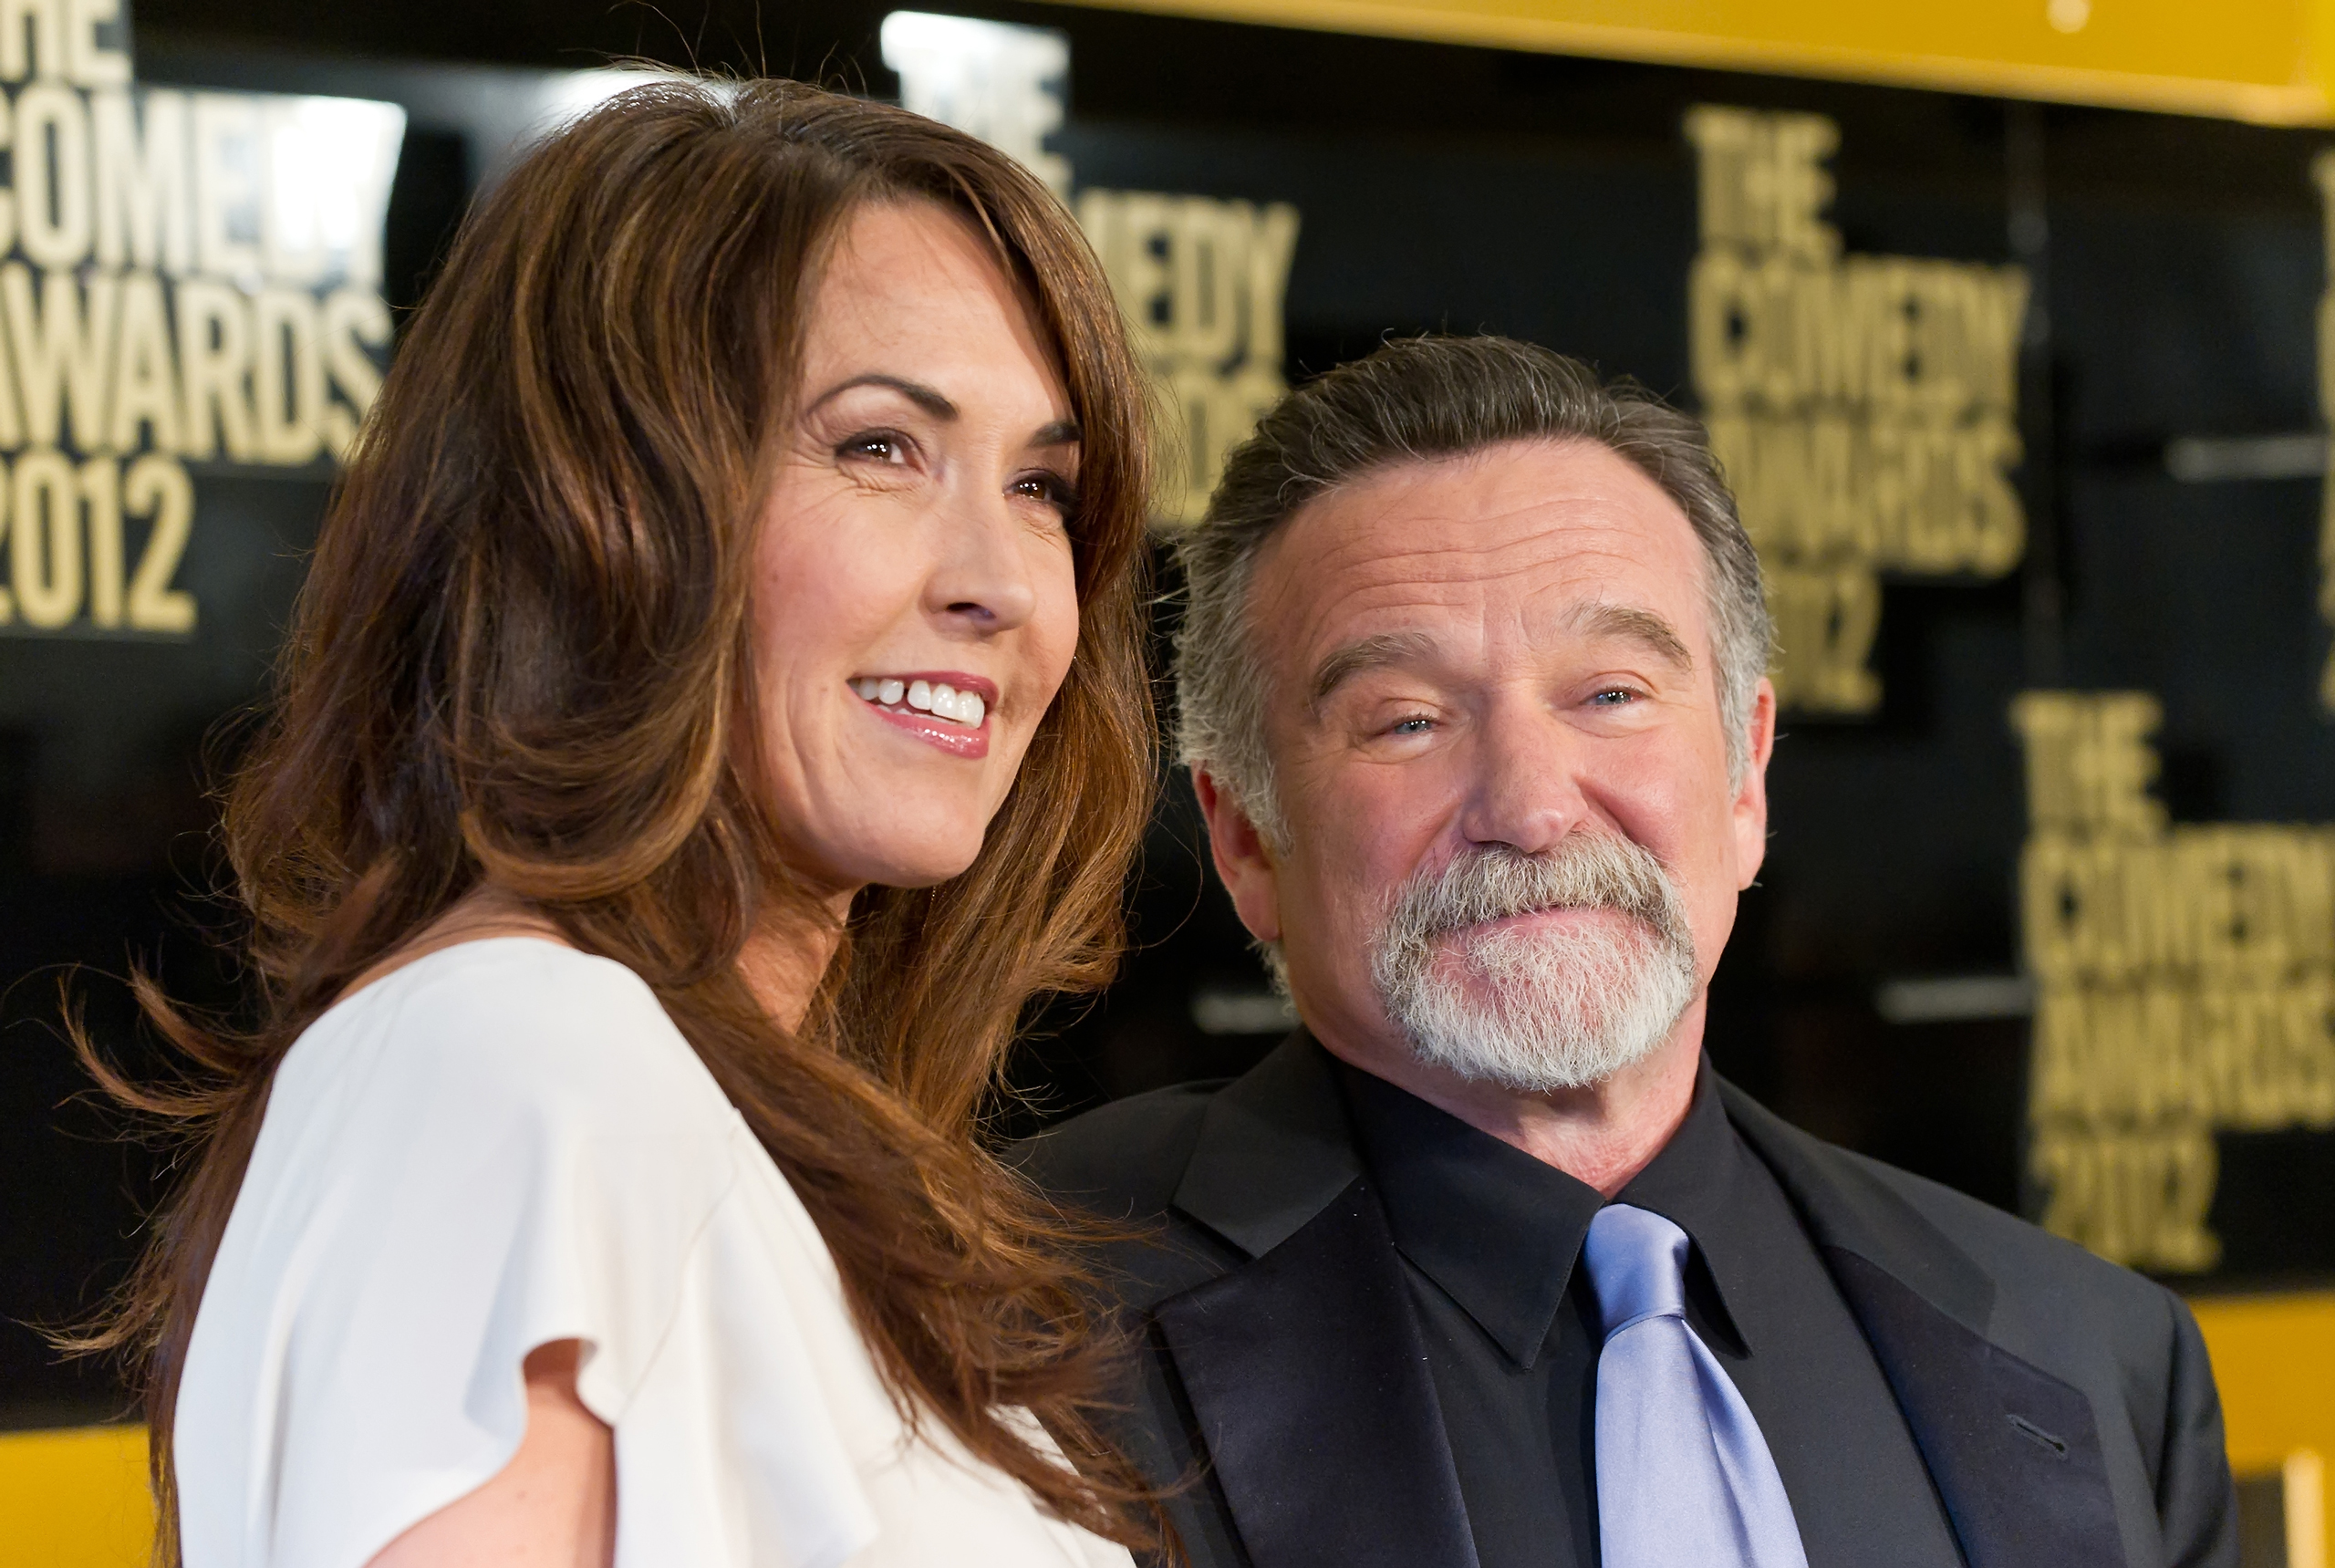 Susan Schneider and comedian Robin Williams attend The Comedy Awards 2012 at Hammerstein Ballroom  in New York City on April 28, 2012.